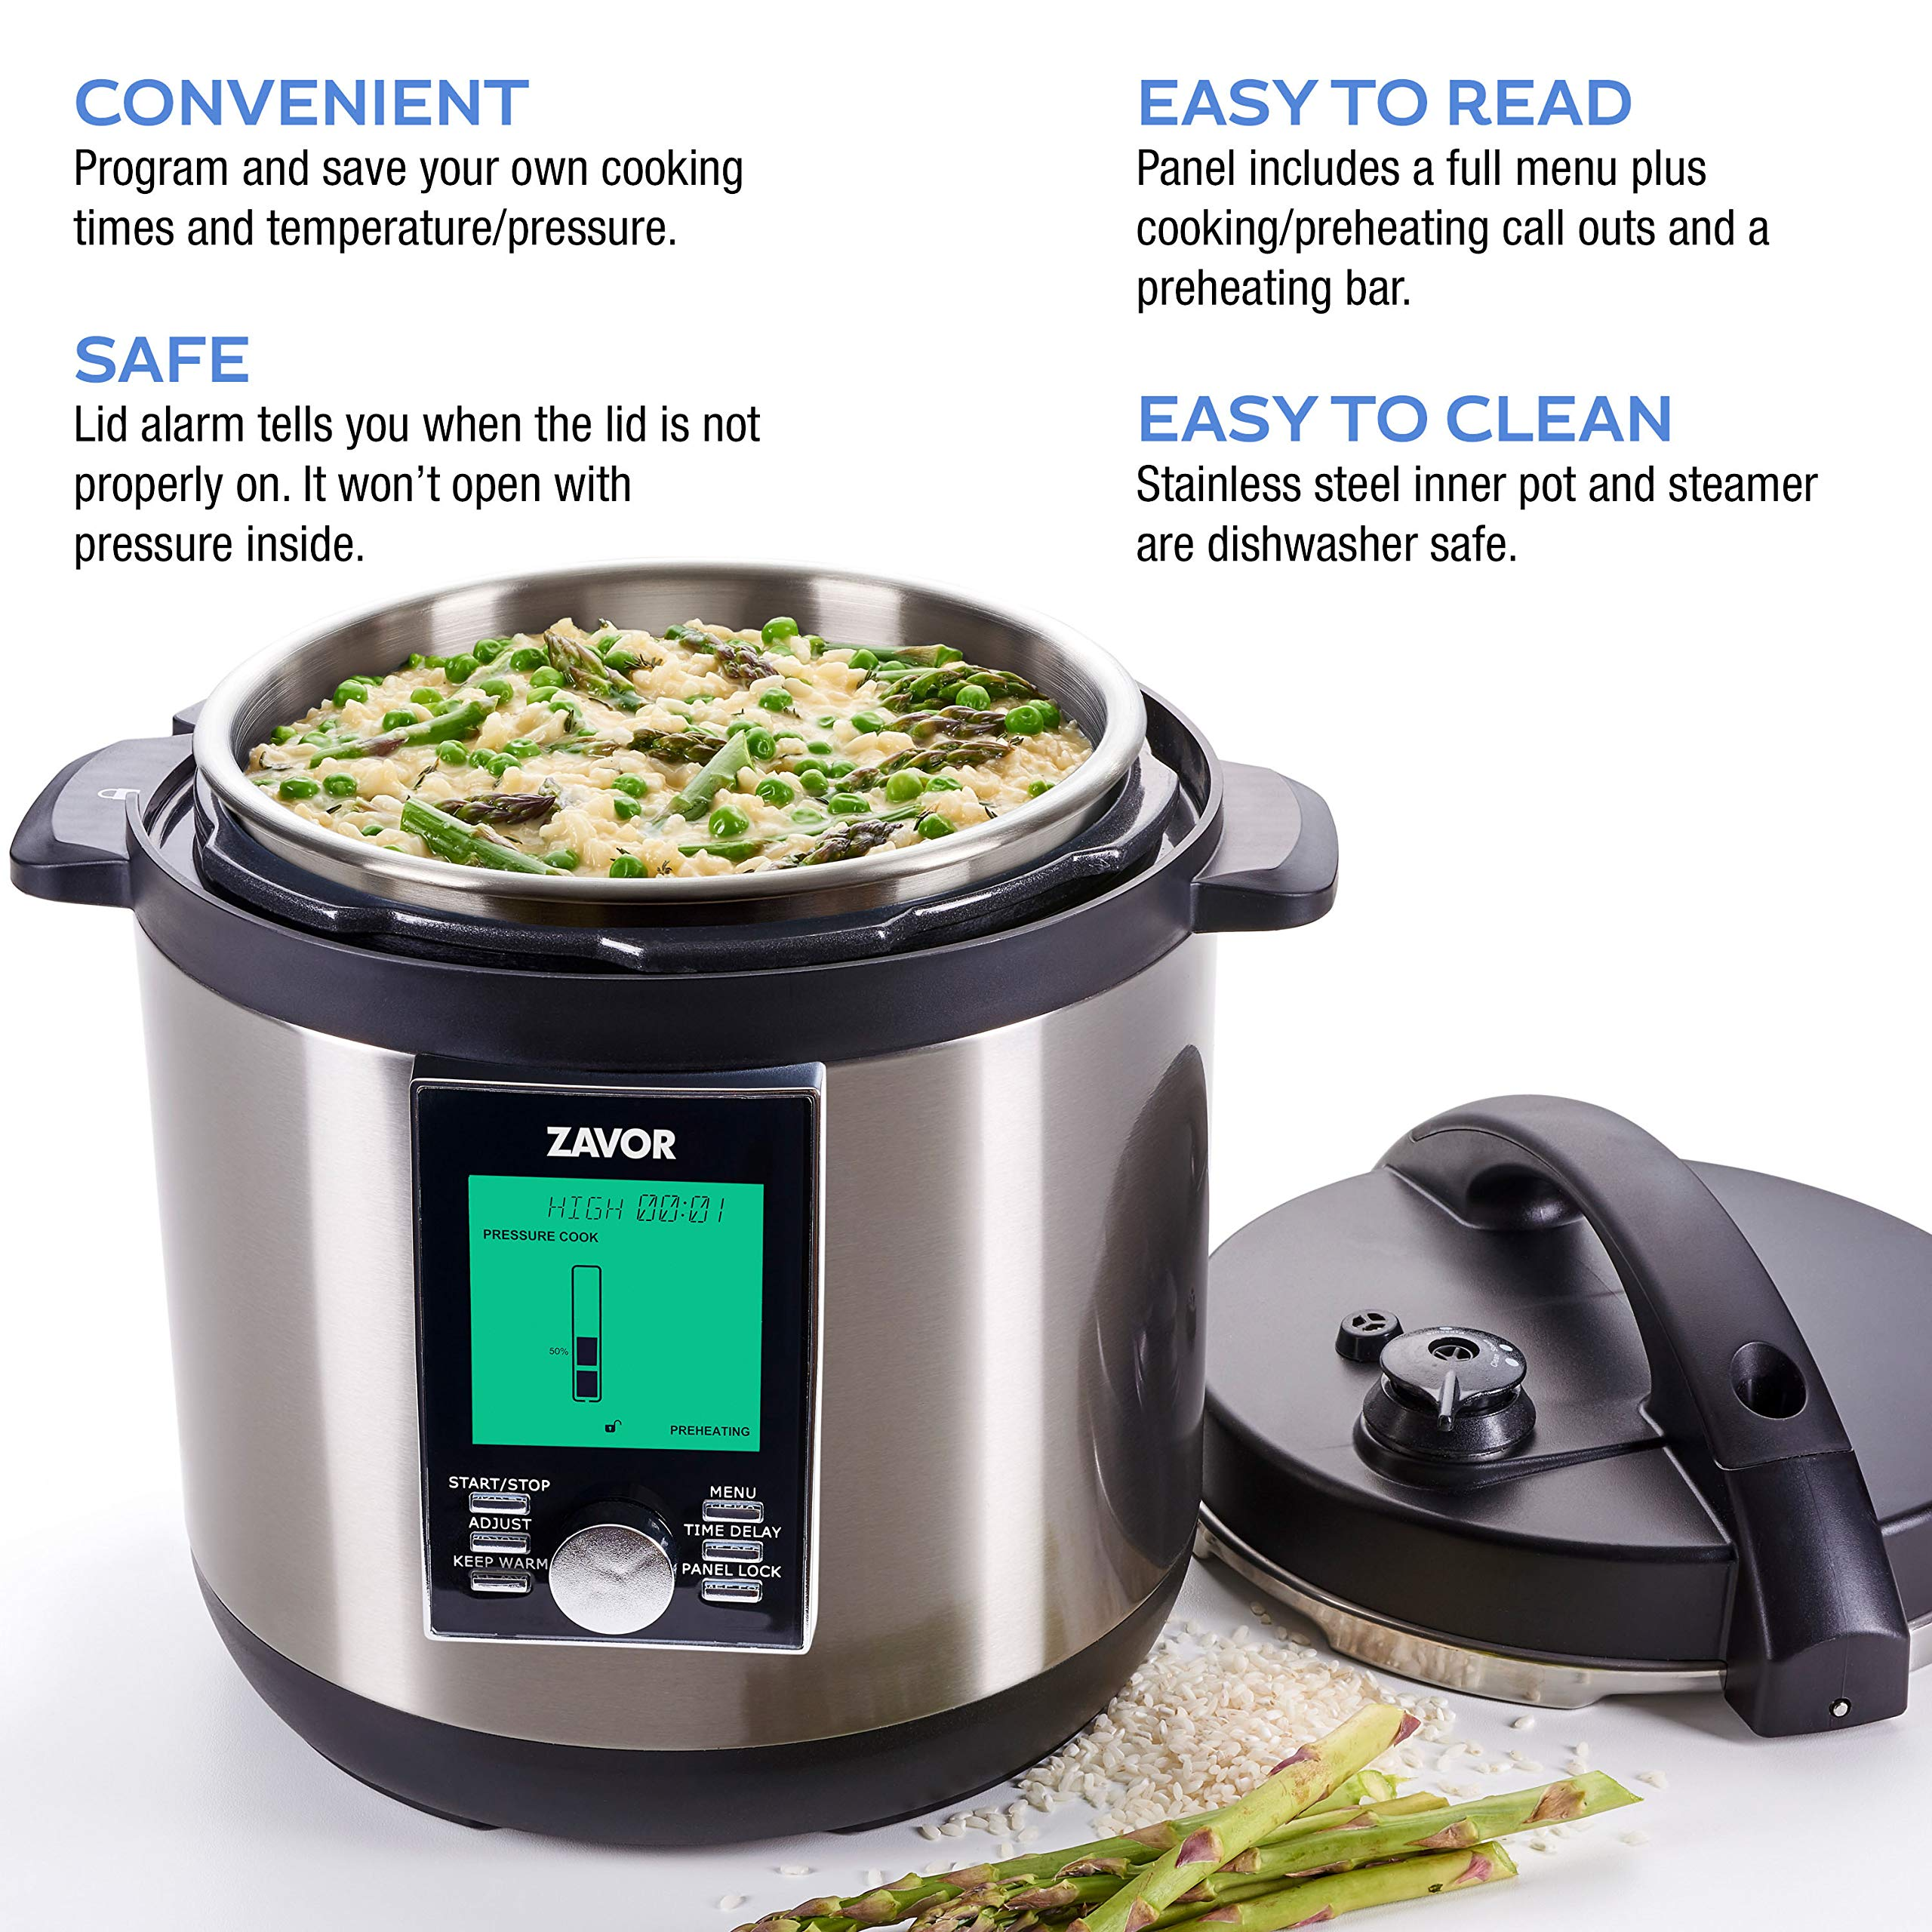 Zavor LUX LCD 8 Quart Programmable Electric Multi-Cooker: Pressure Cooker, Slow Cooker, Rice Cooker, Yogurt Maker, Steamer and more - Stainless Steel (ZSELL03) by ZAVOR (Image #4)